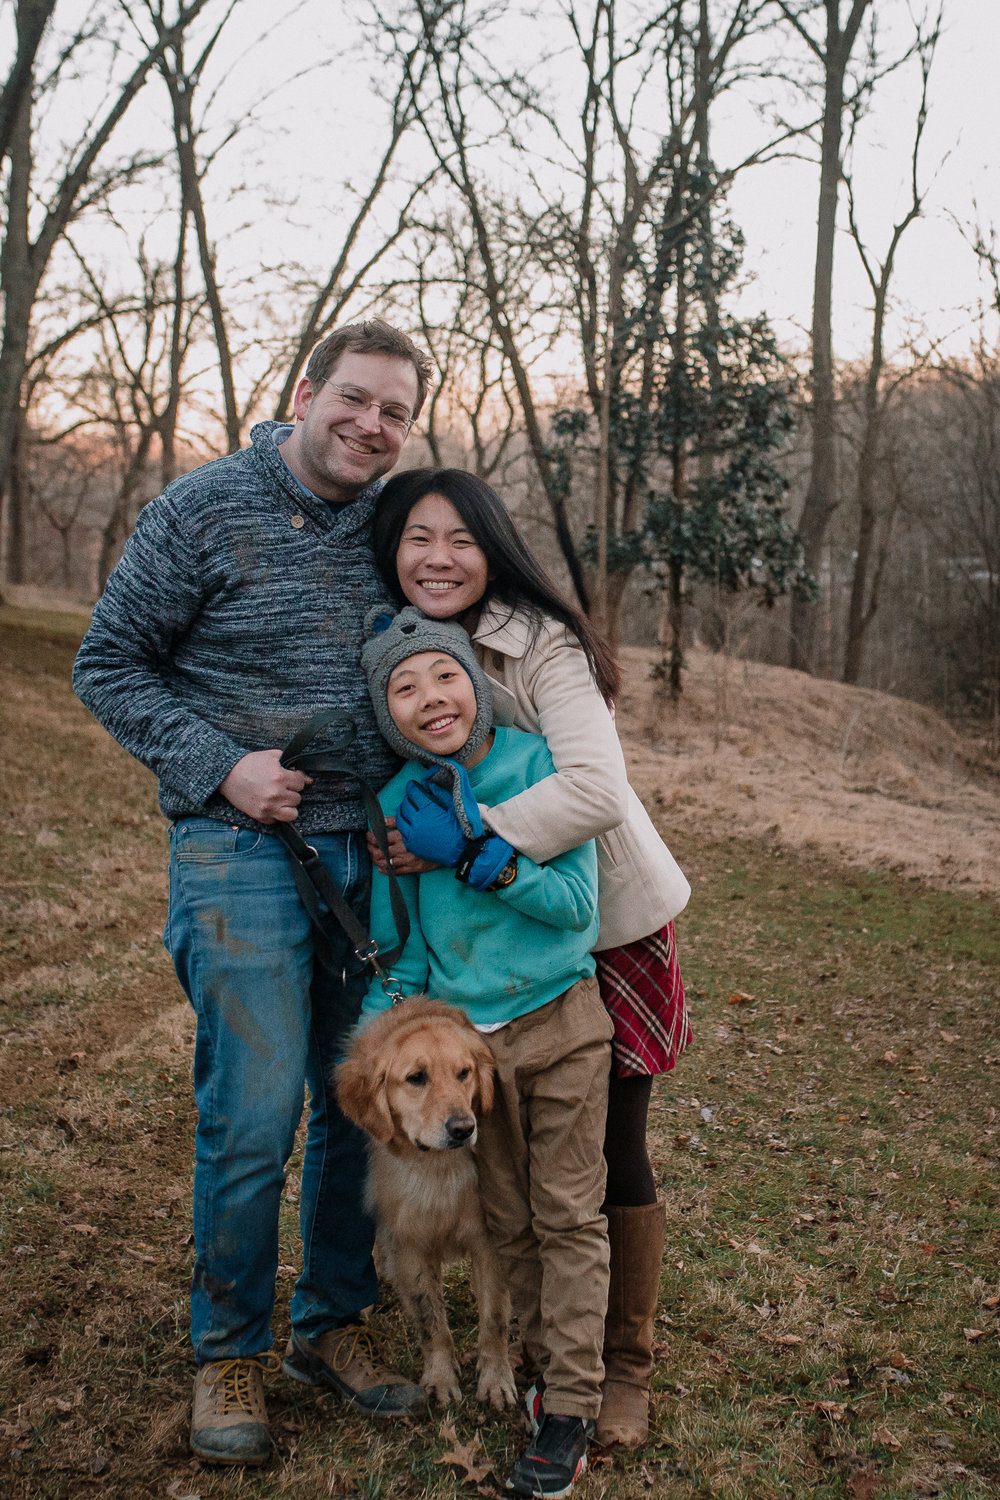 family portrait mother father son dog Lifestyle Documentary Found Families Adoption Outdoor Golden Hour Sunset Colvin Run Mill Great Falls Virginia Marti Austin Photography